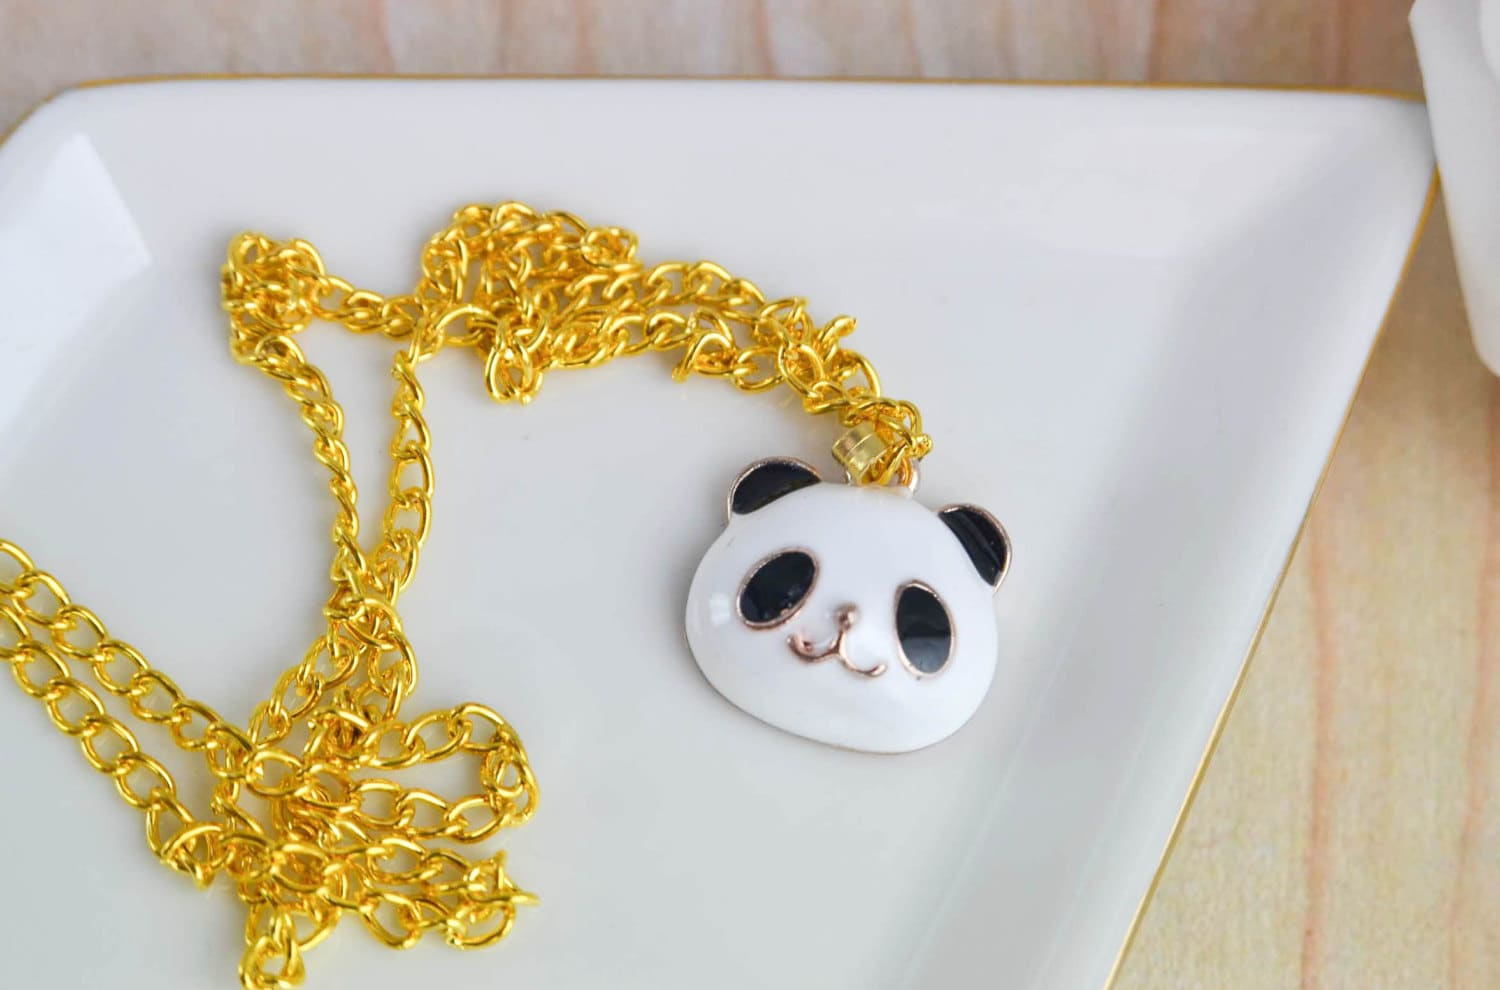 panda necklace bijoux animaux collier charms maill. Black Bedroom Furniture Sets. Home Design Ideas